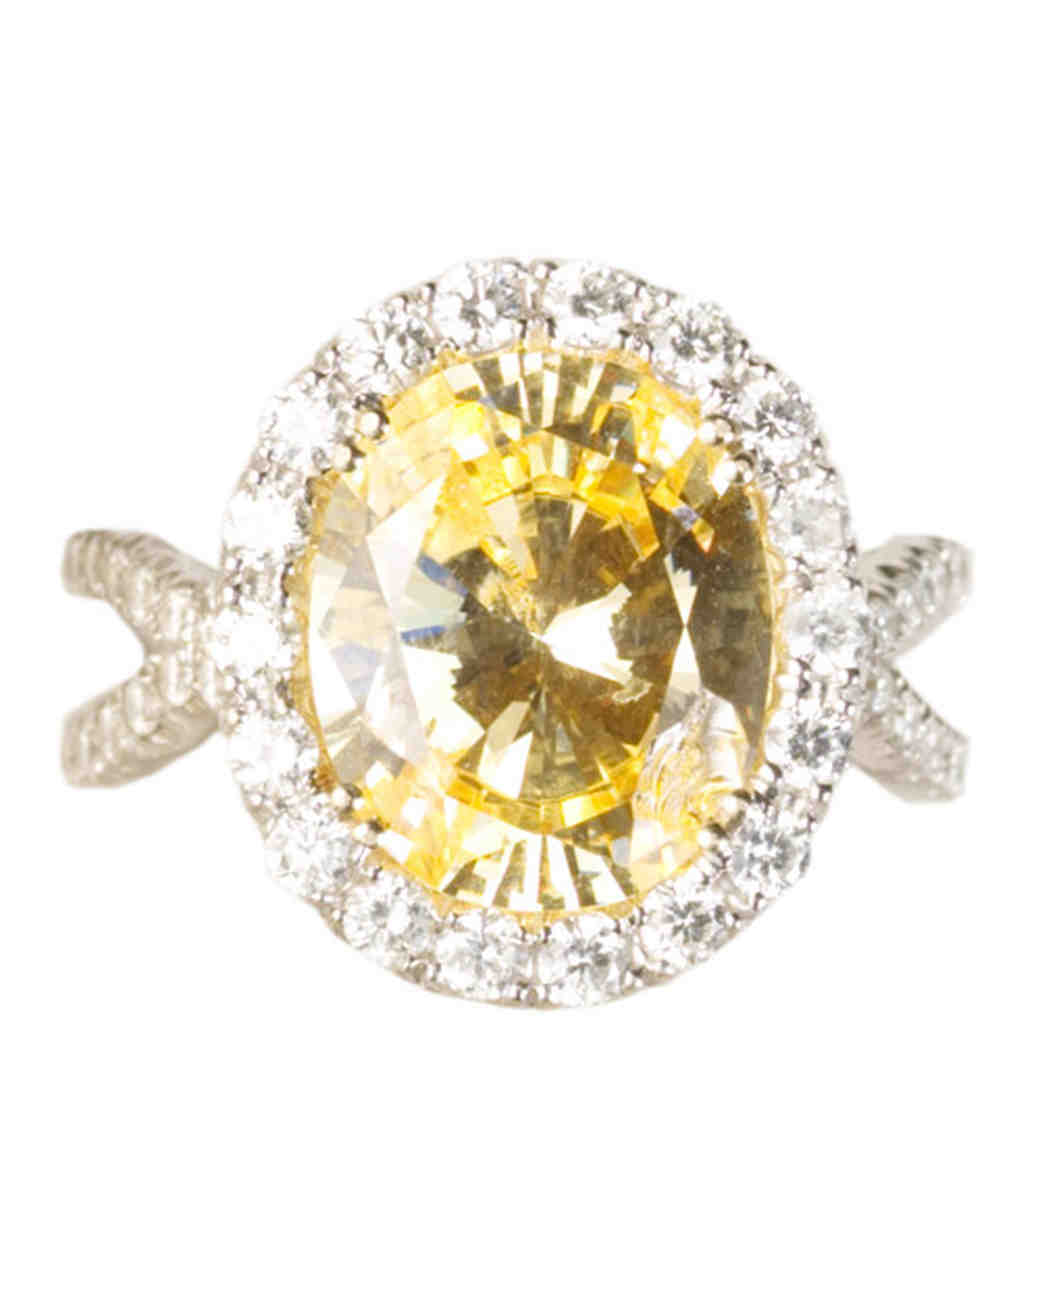 msw_sum10_yellow_ring_michaelm.jpg